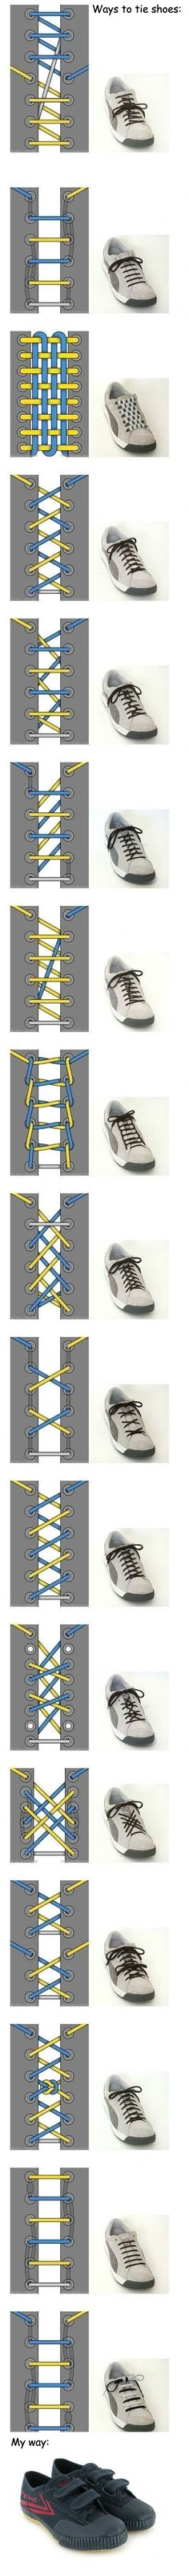 Cool Ways To Tie Your Shoe Laces ~ shoe lace patterns ~ Will have to remember this when the kids finally get shoes with laces. Tie Shoes, Your Shoes, Shoes Pic, Sneakers Shoes, Jeans Shoes, Cuffed Jeans, Platform Sneakers, Flat Shoes, Good To Know